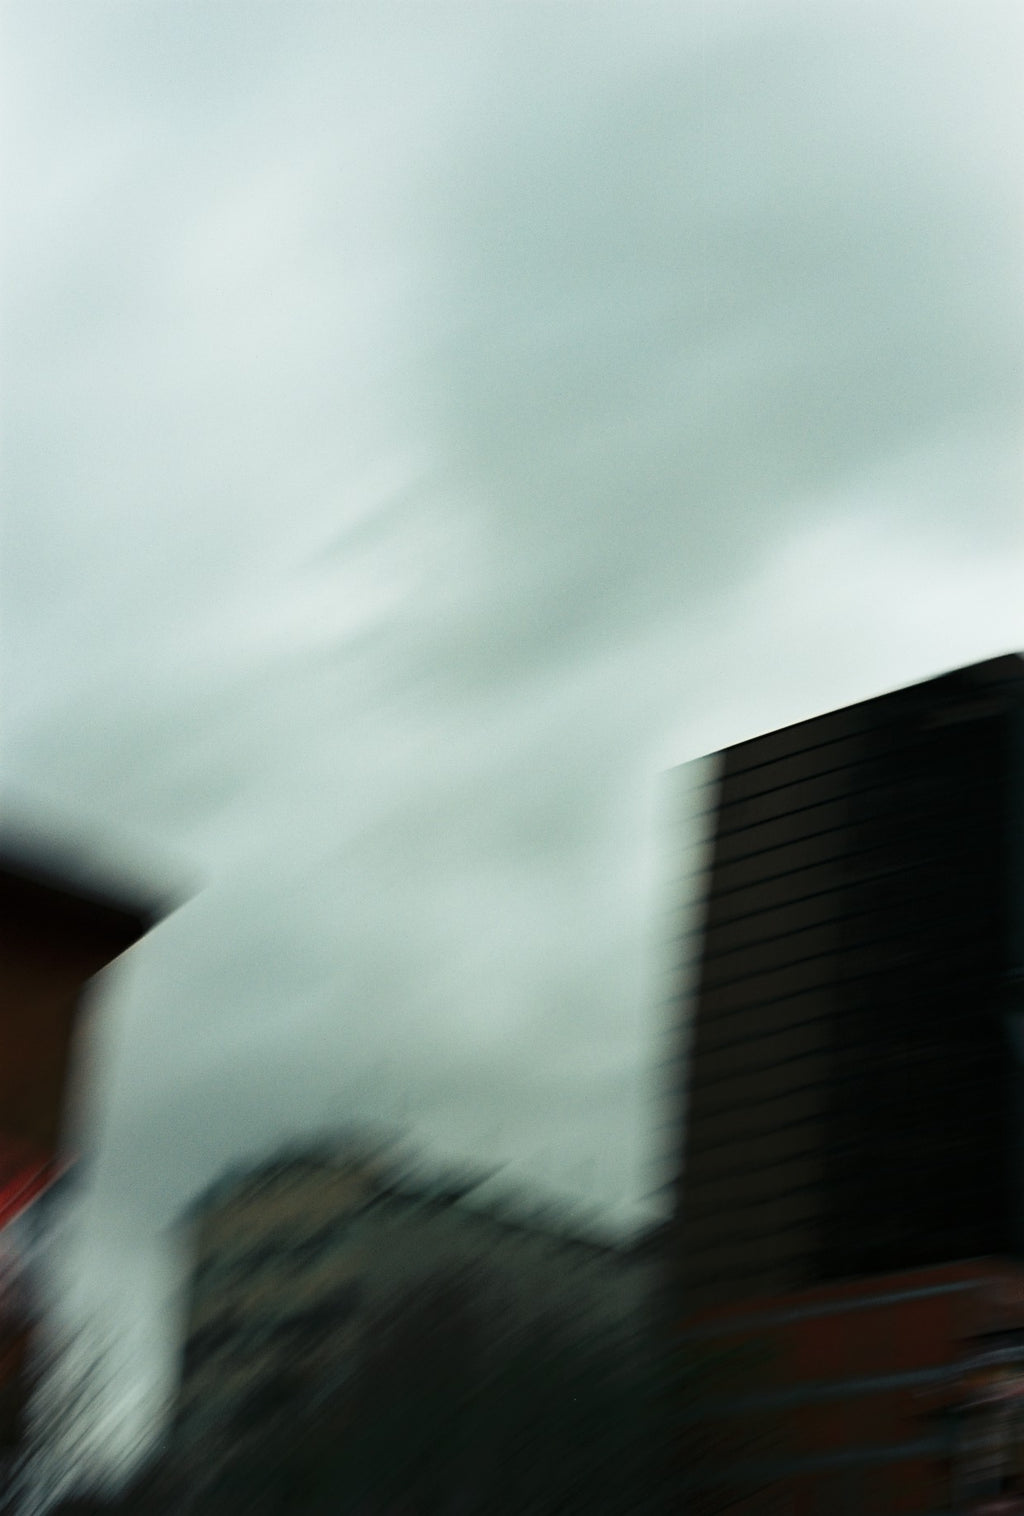 A photograph is a city building on a dark day with motion blur.